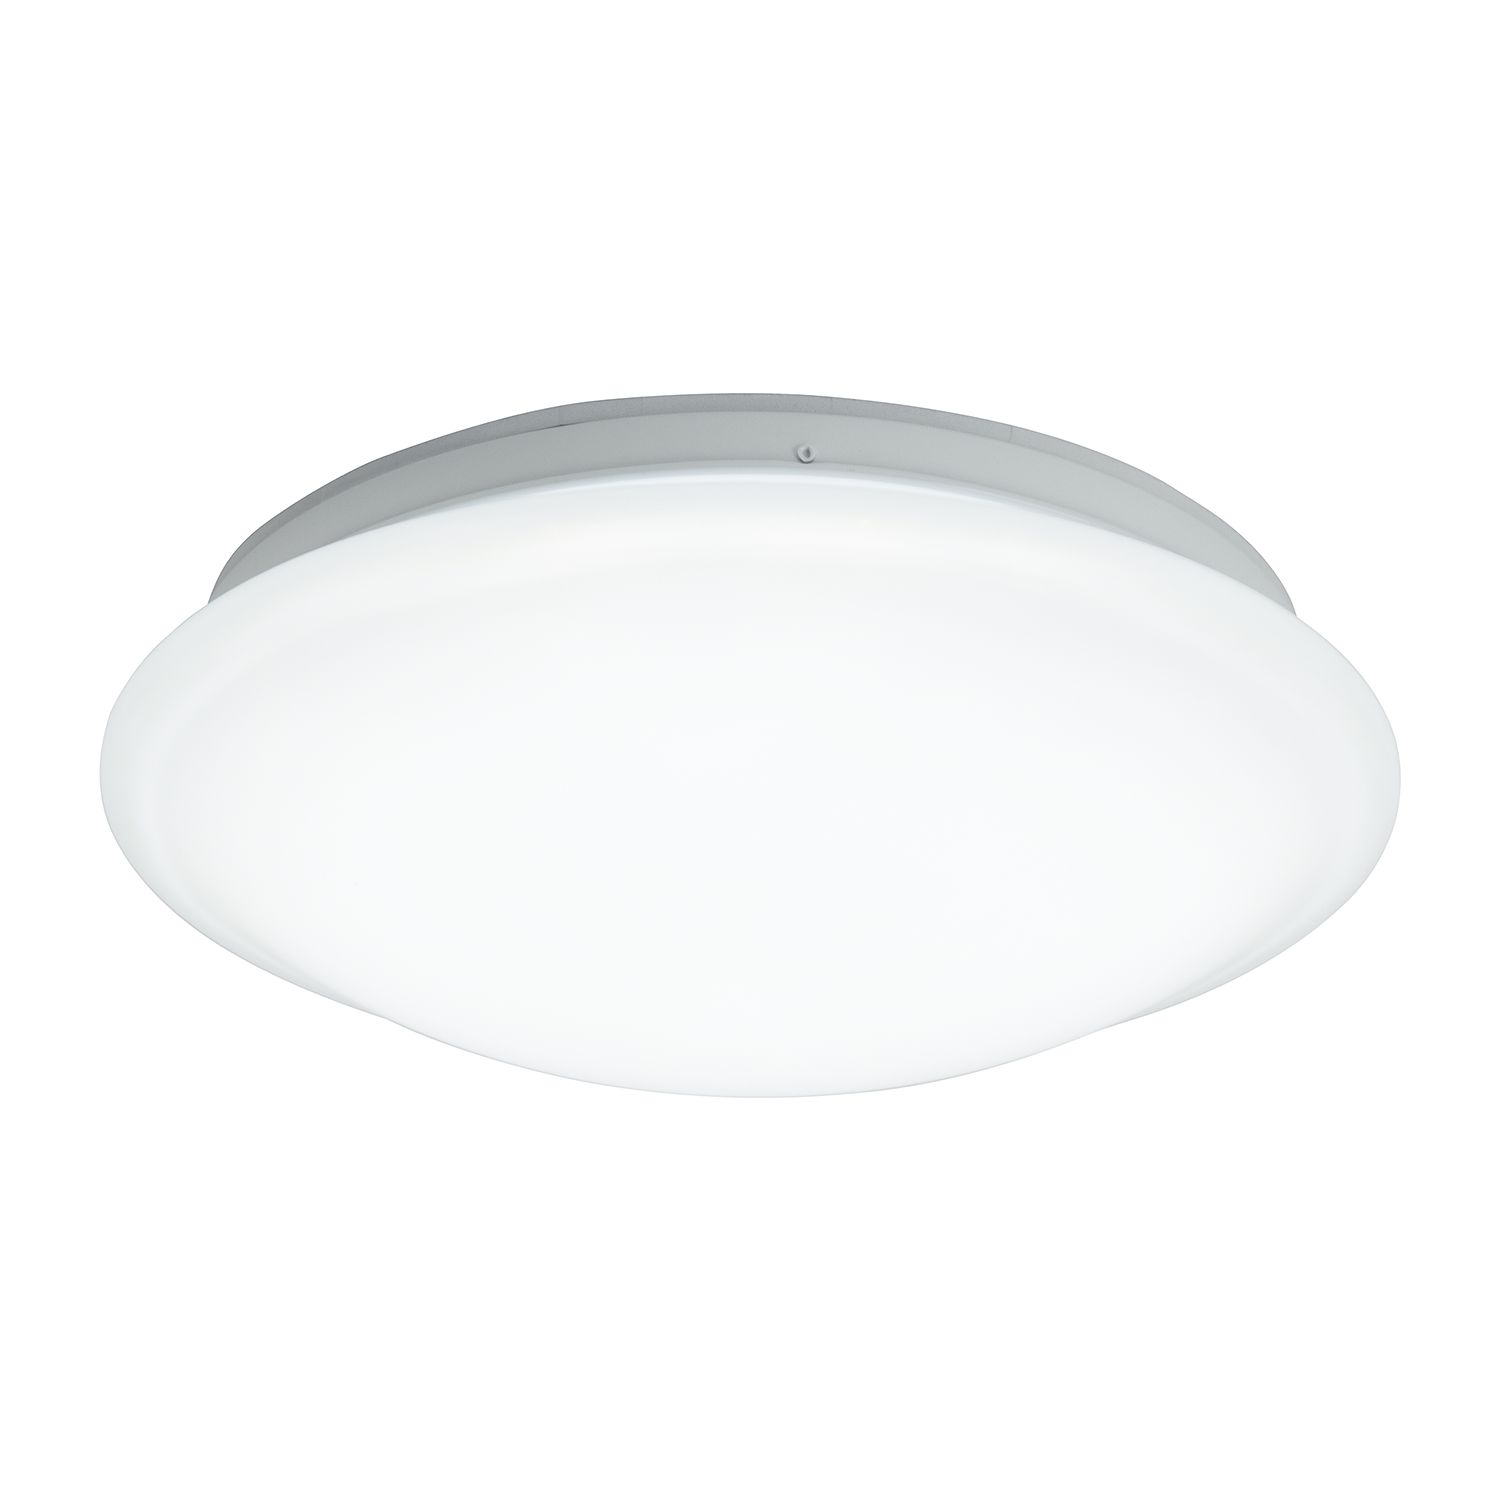 energie  A+, LED-wand-/plafondlamp Equinox - metaal wit 1 lichtbron, Brilliant